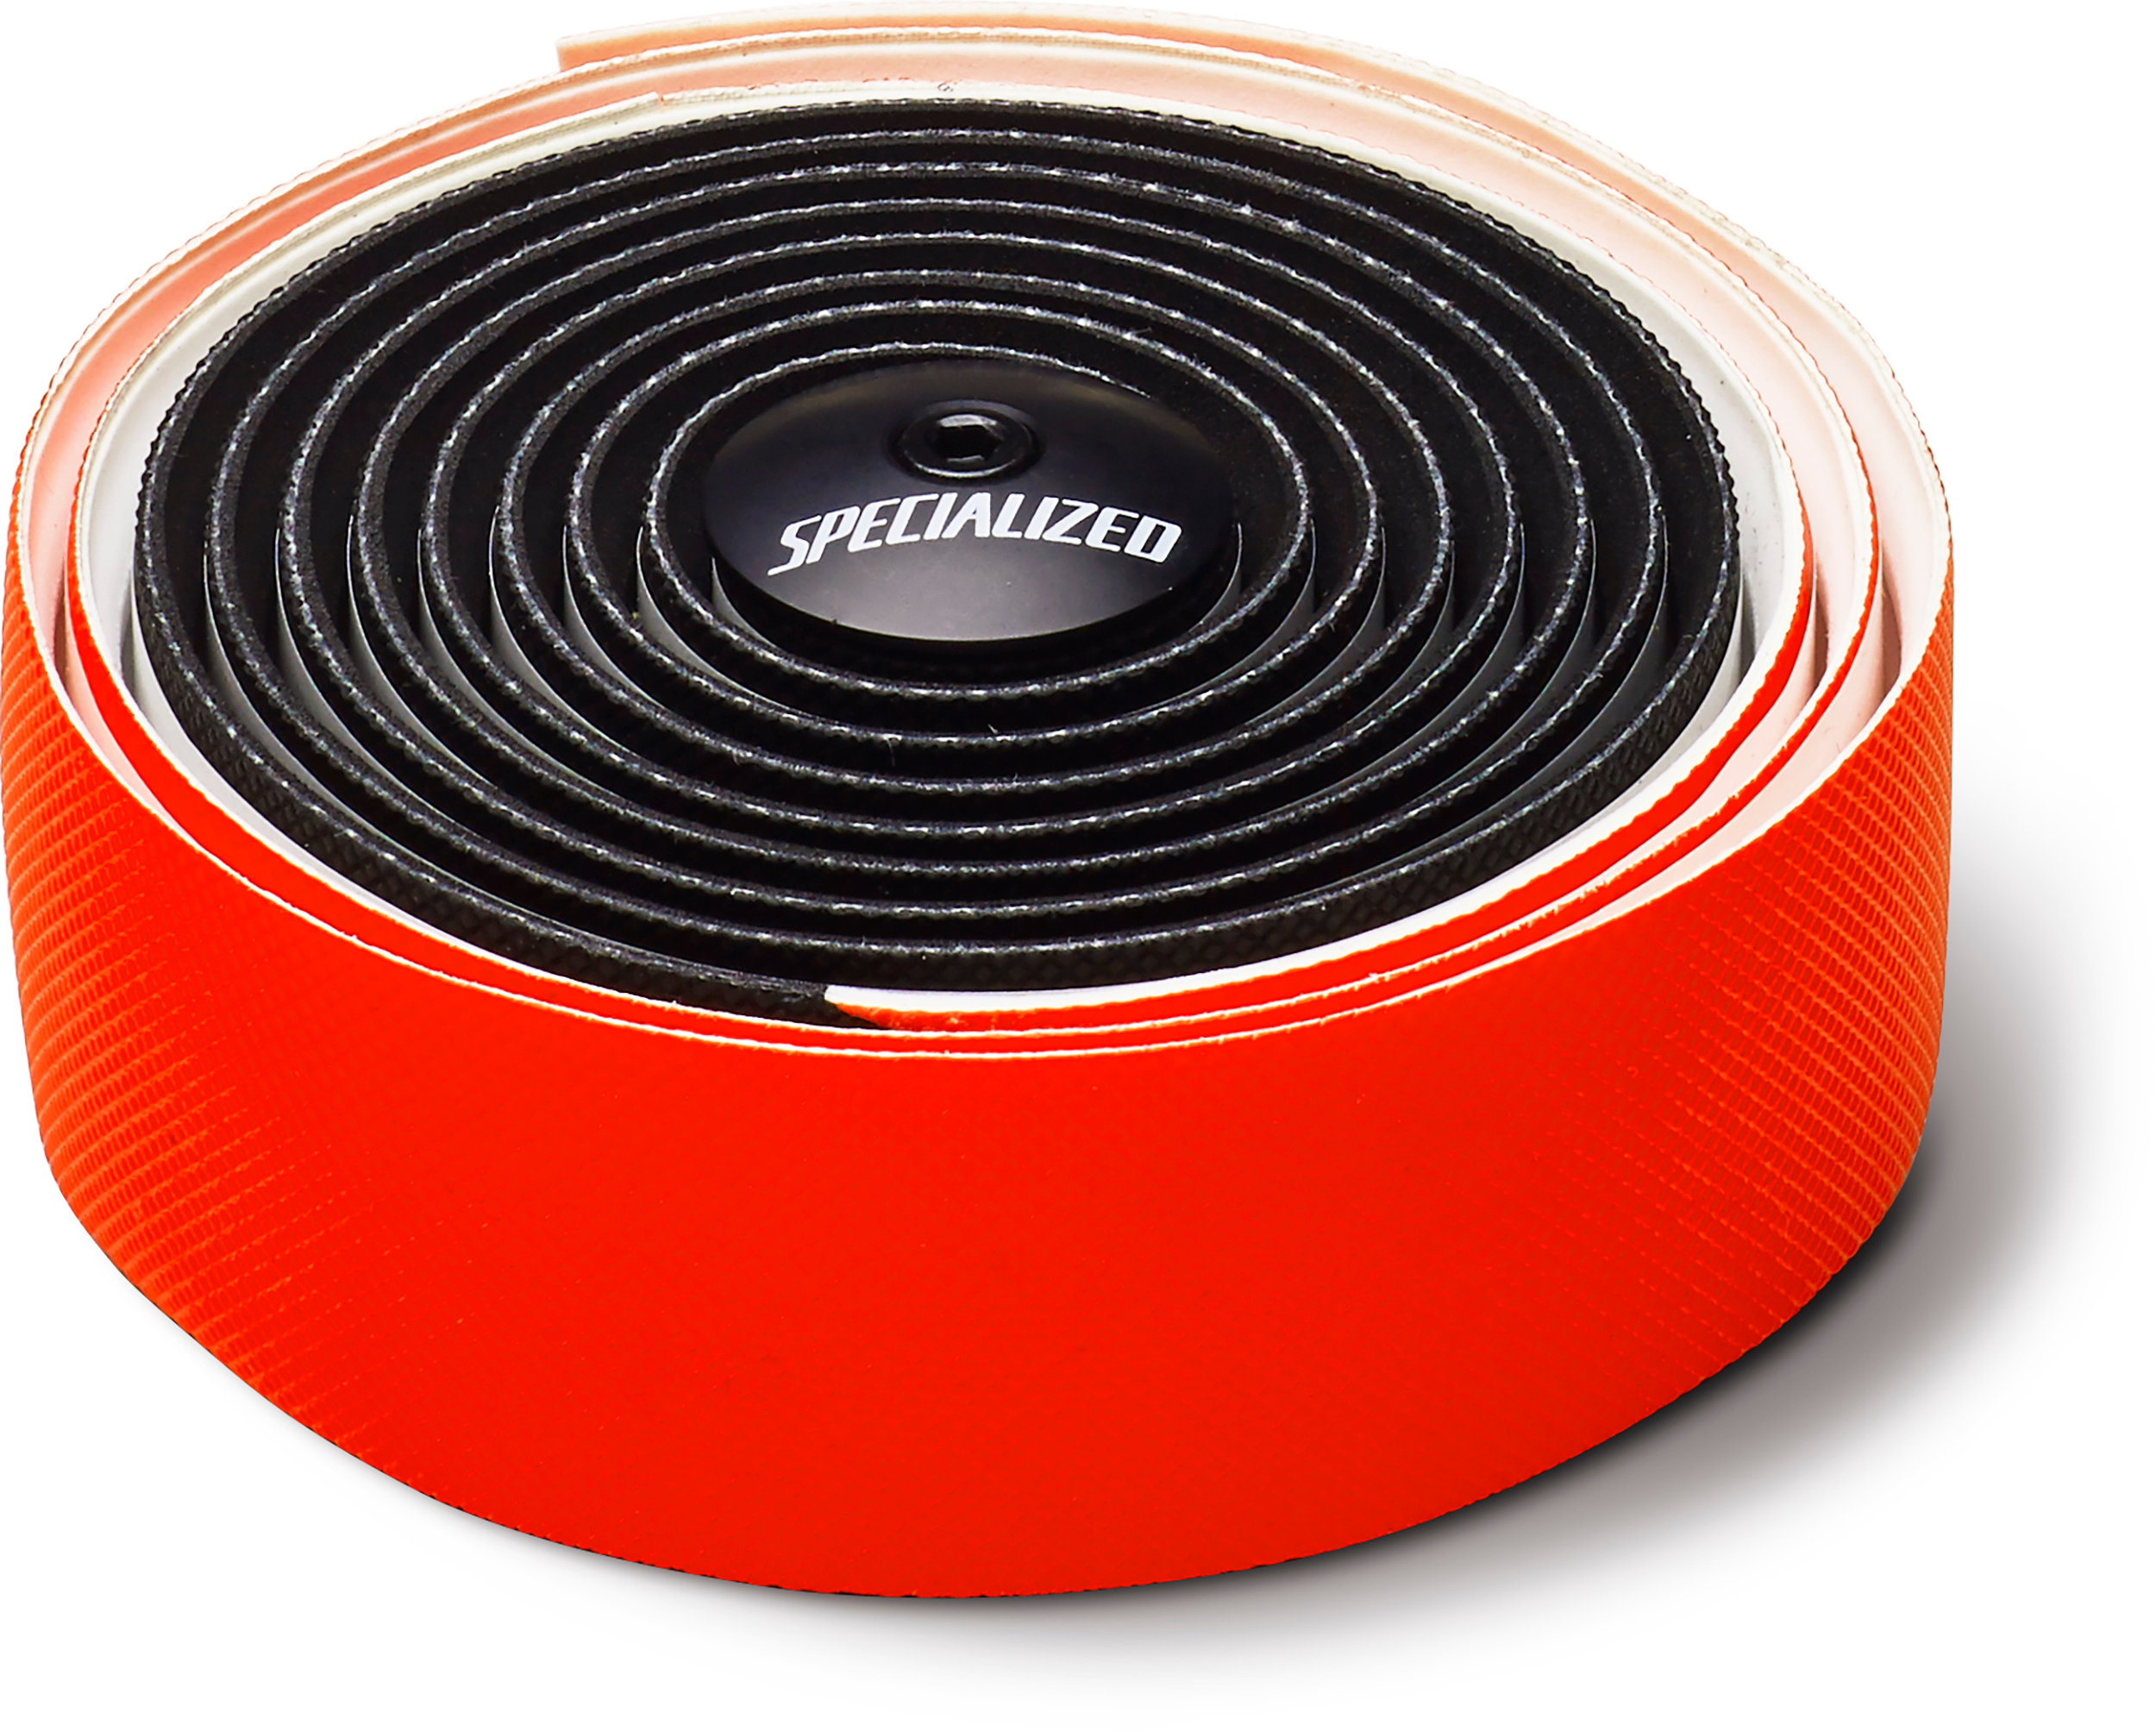 SPECIALIZED S-WRAP HD TAPE RKTRED/BLK - SPECIALIZED S-WRAP HD TAPE RKTRED/BLK